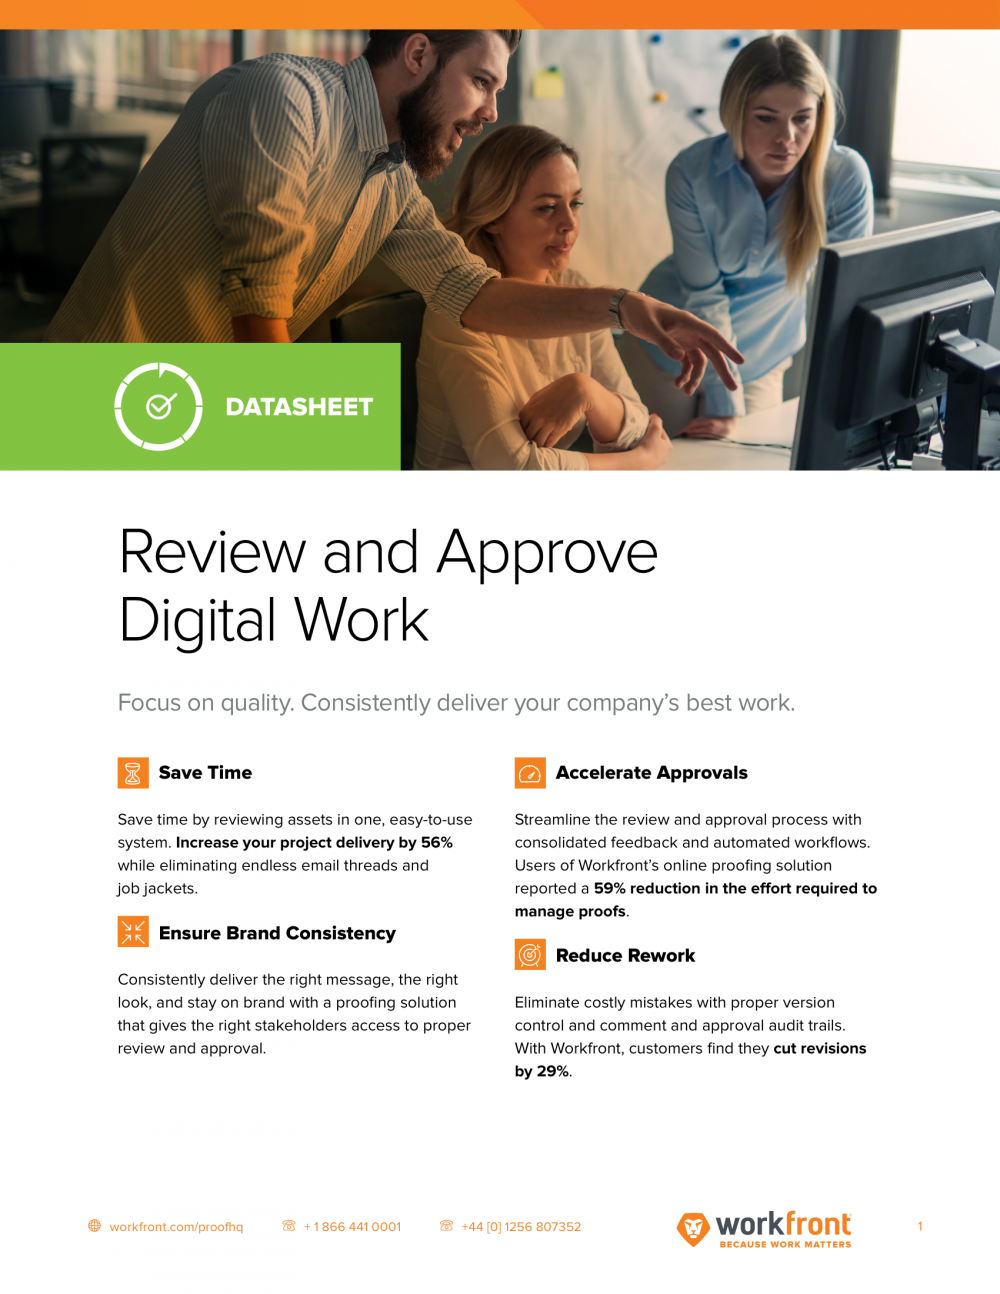 Review and Approve Digital Work Datasheet